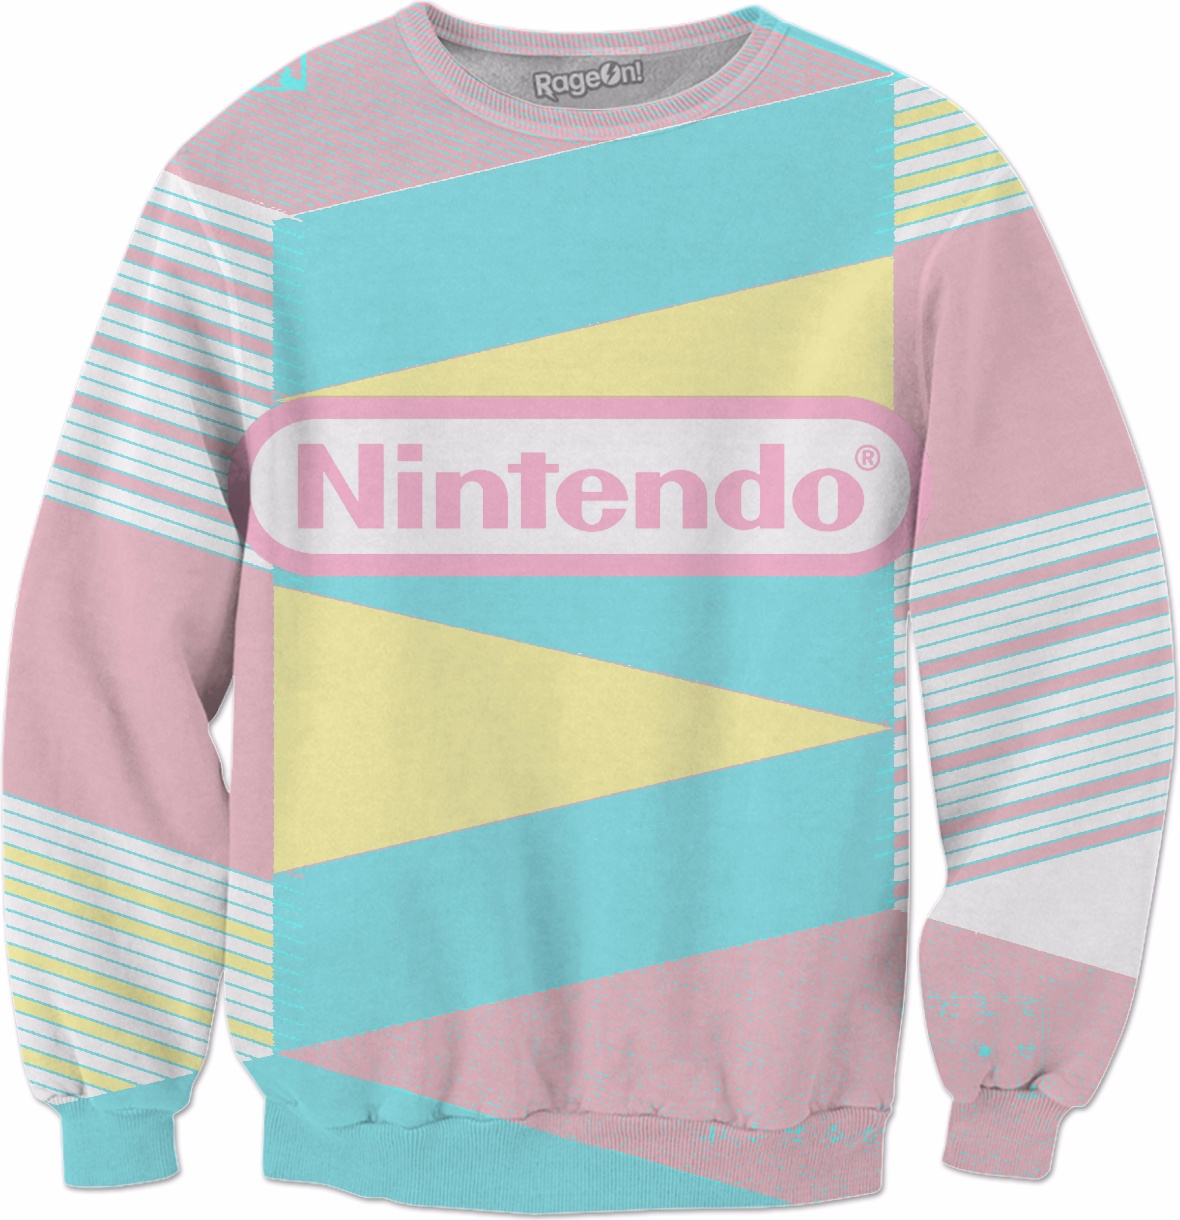 New 2019 Mens 3D Sweatshirt Men And Women Autumn/Winter Fashion Colorful Printed Hoodies Brand Clothing 5XL